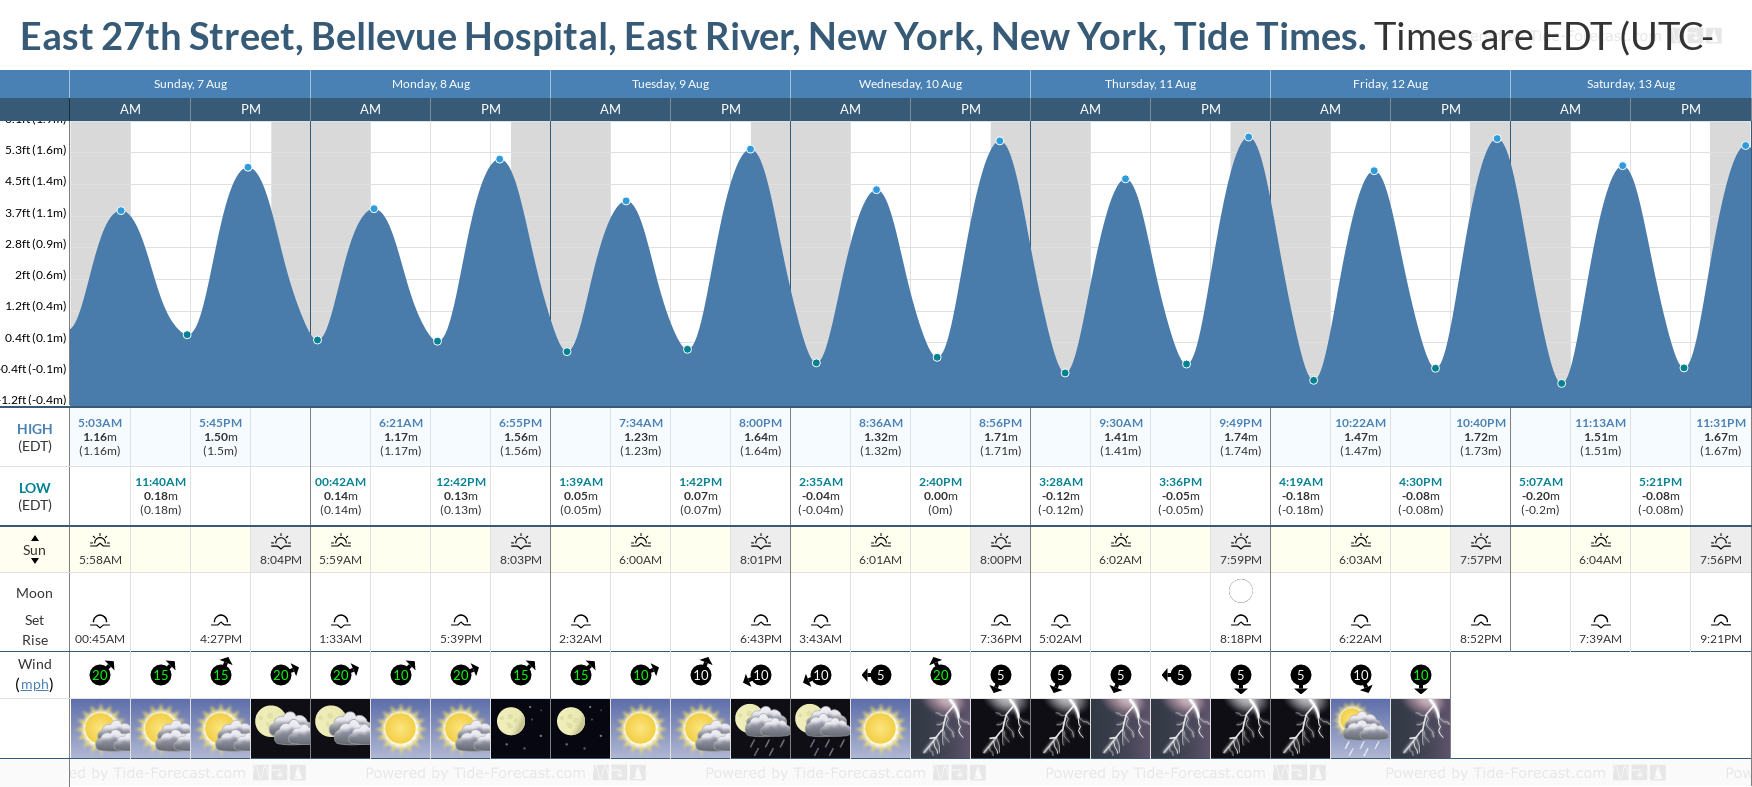 East 27th Street, Bellevue Hospital, East River, New York, New York Tide Chart including high and low tide tide times for the next 7 days